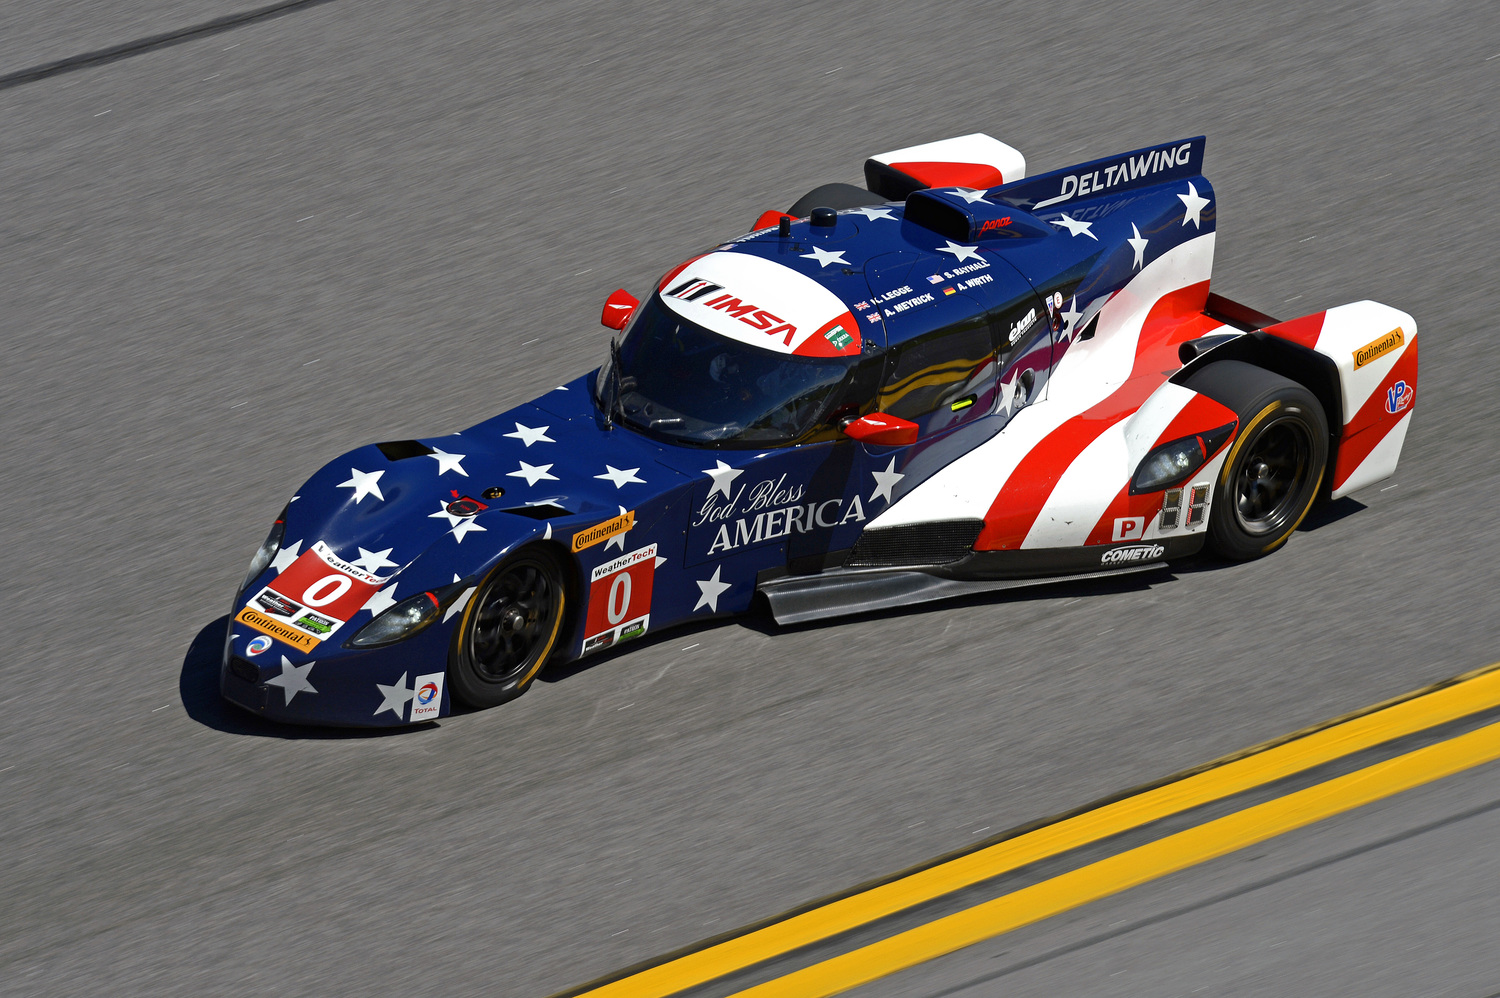 DELTAWING ENGINEER TO SPEAK ON MOTORSPORTS INNOVATION AT SxSW